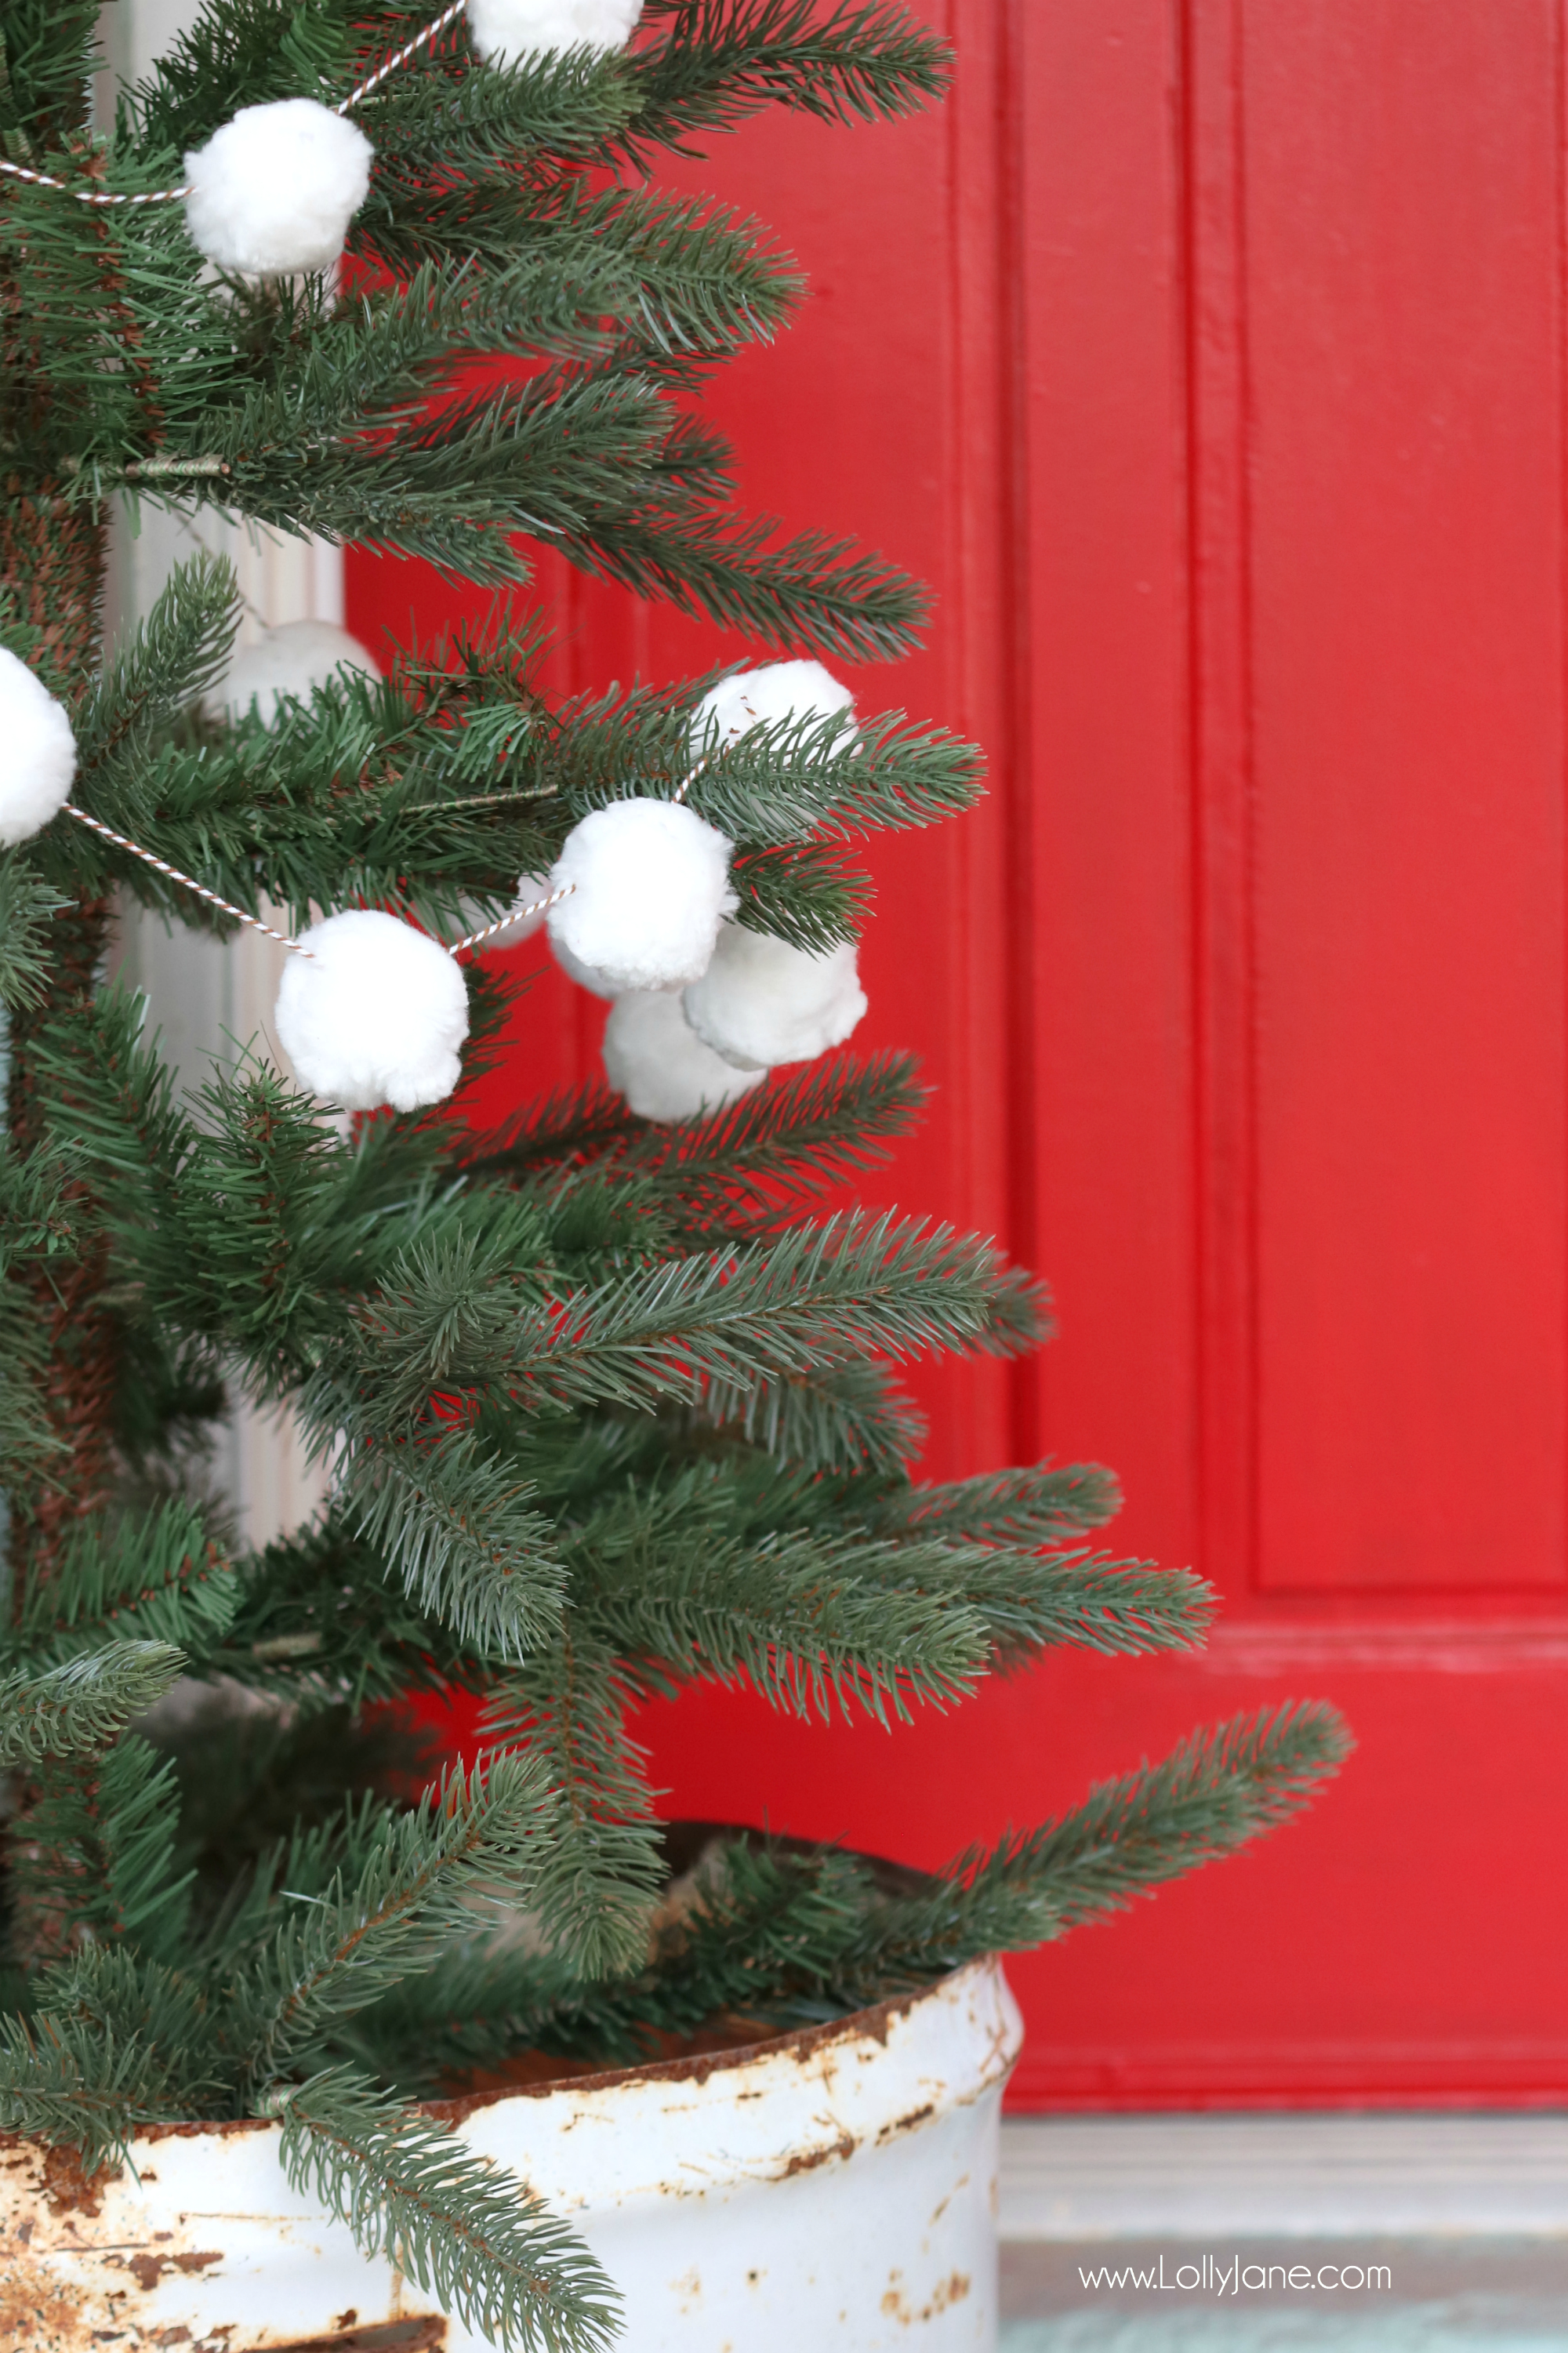 White pom pom christmas tree garland tutorial look at those cute puffy balls up close so festive and makes the green branches really pop solutioingenieria Image collections